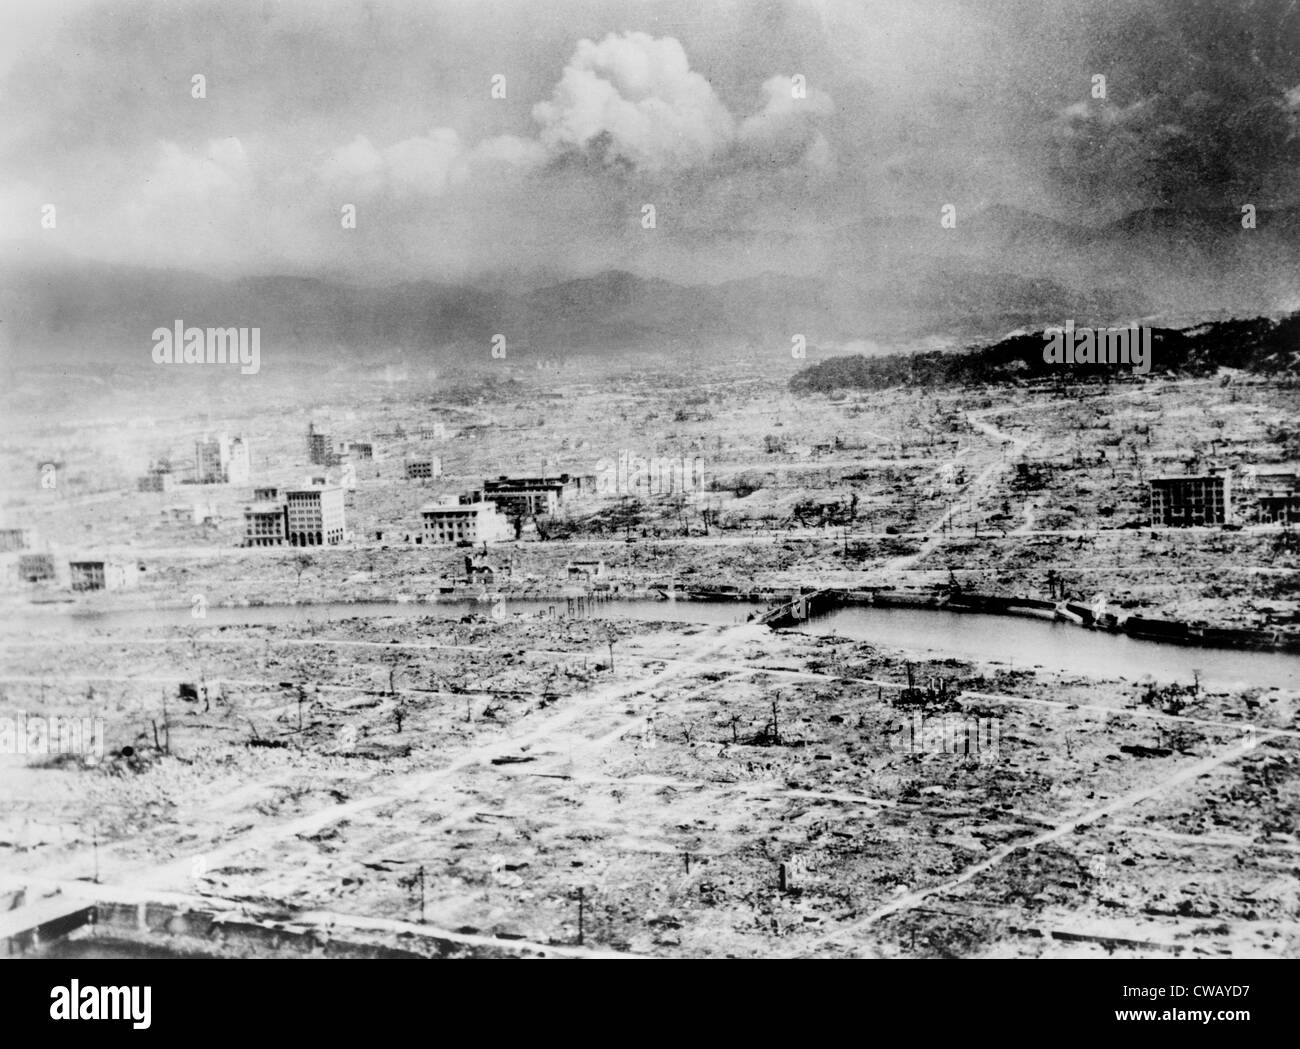 Atomic Bomb Hiroshima Japan After The Was Dropped By US Bomber Enola Gay 1945